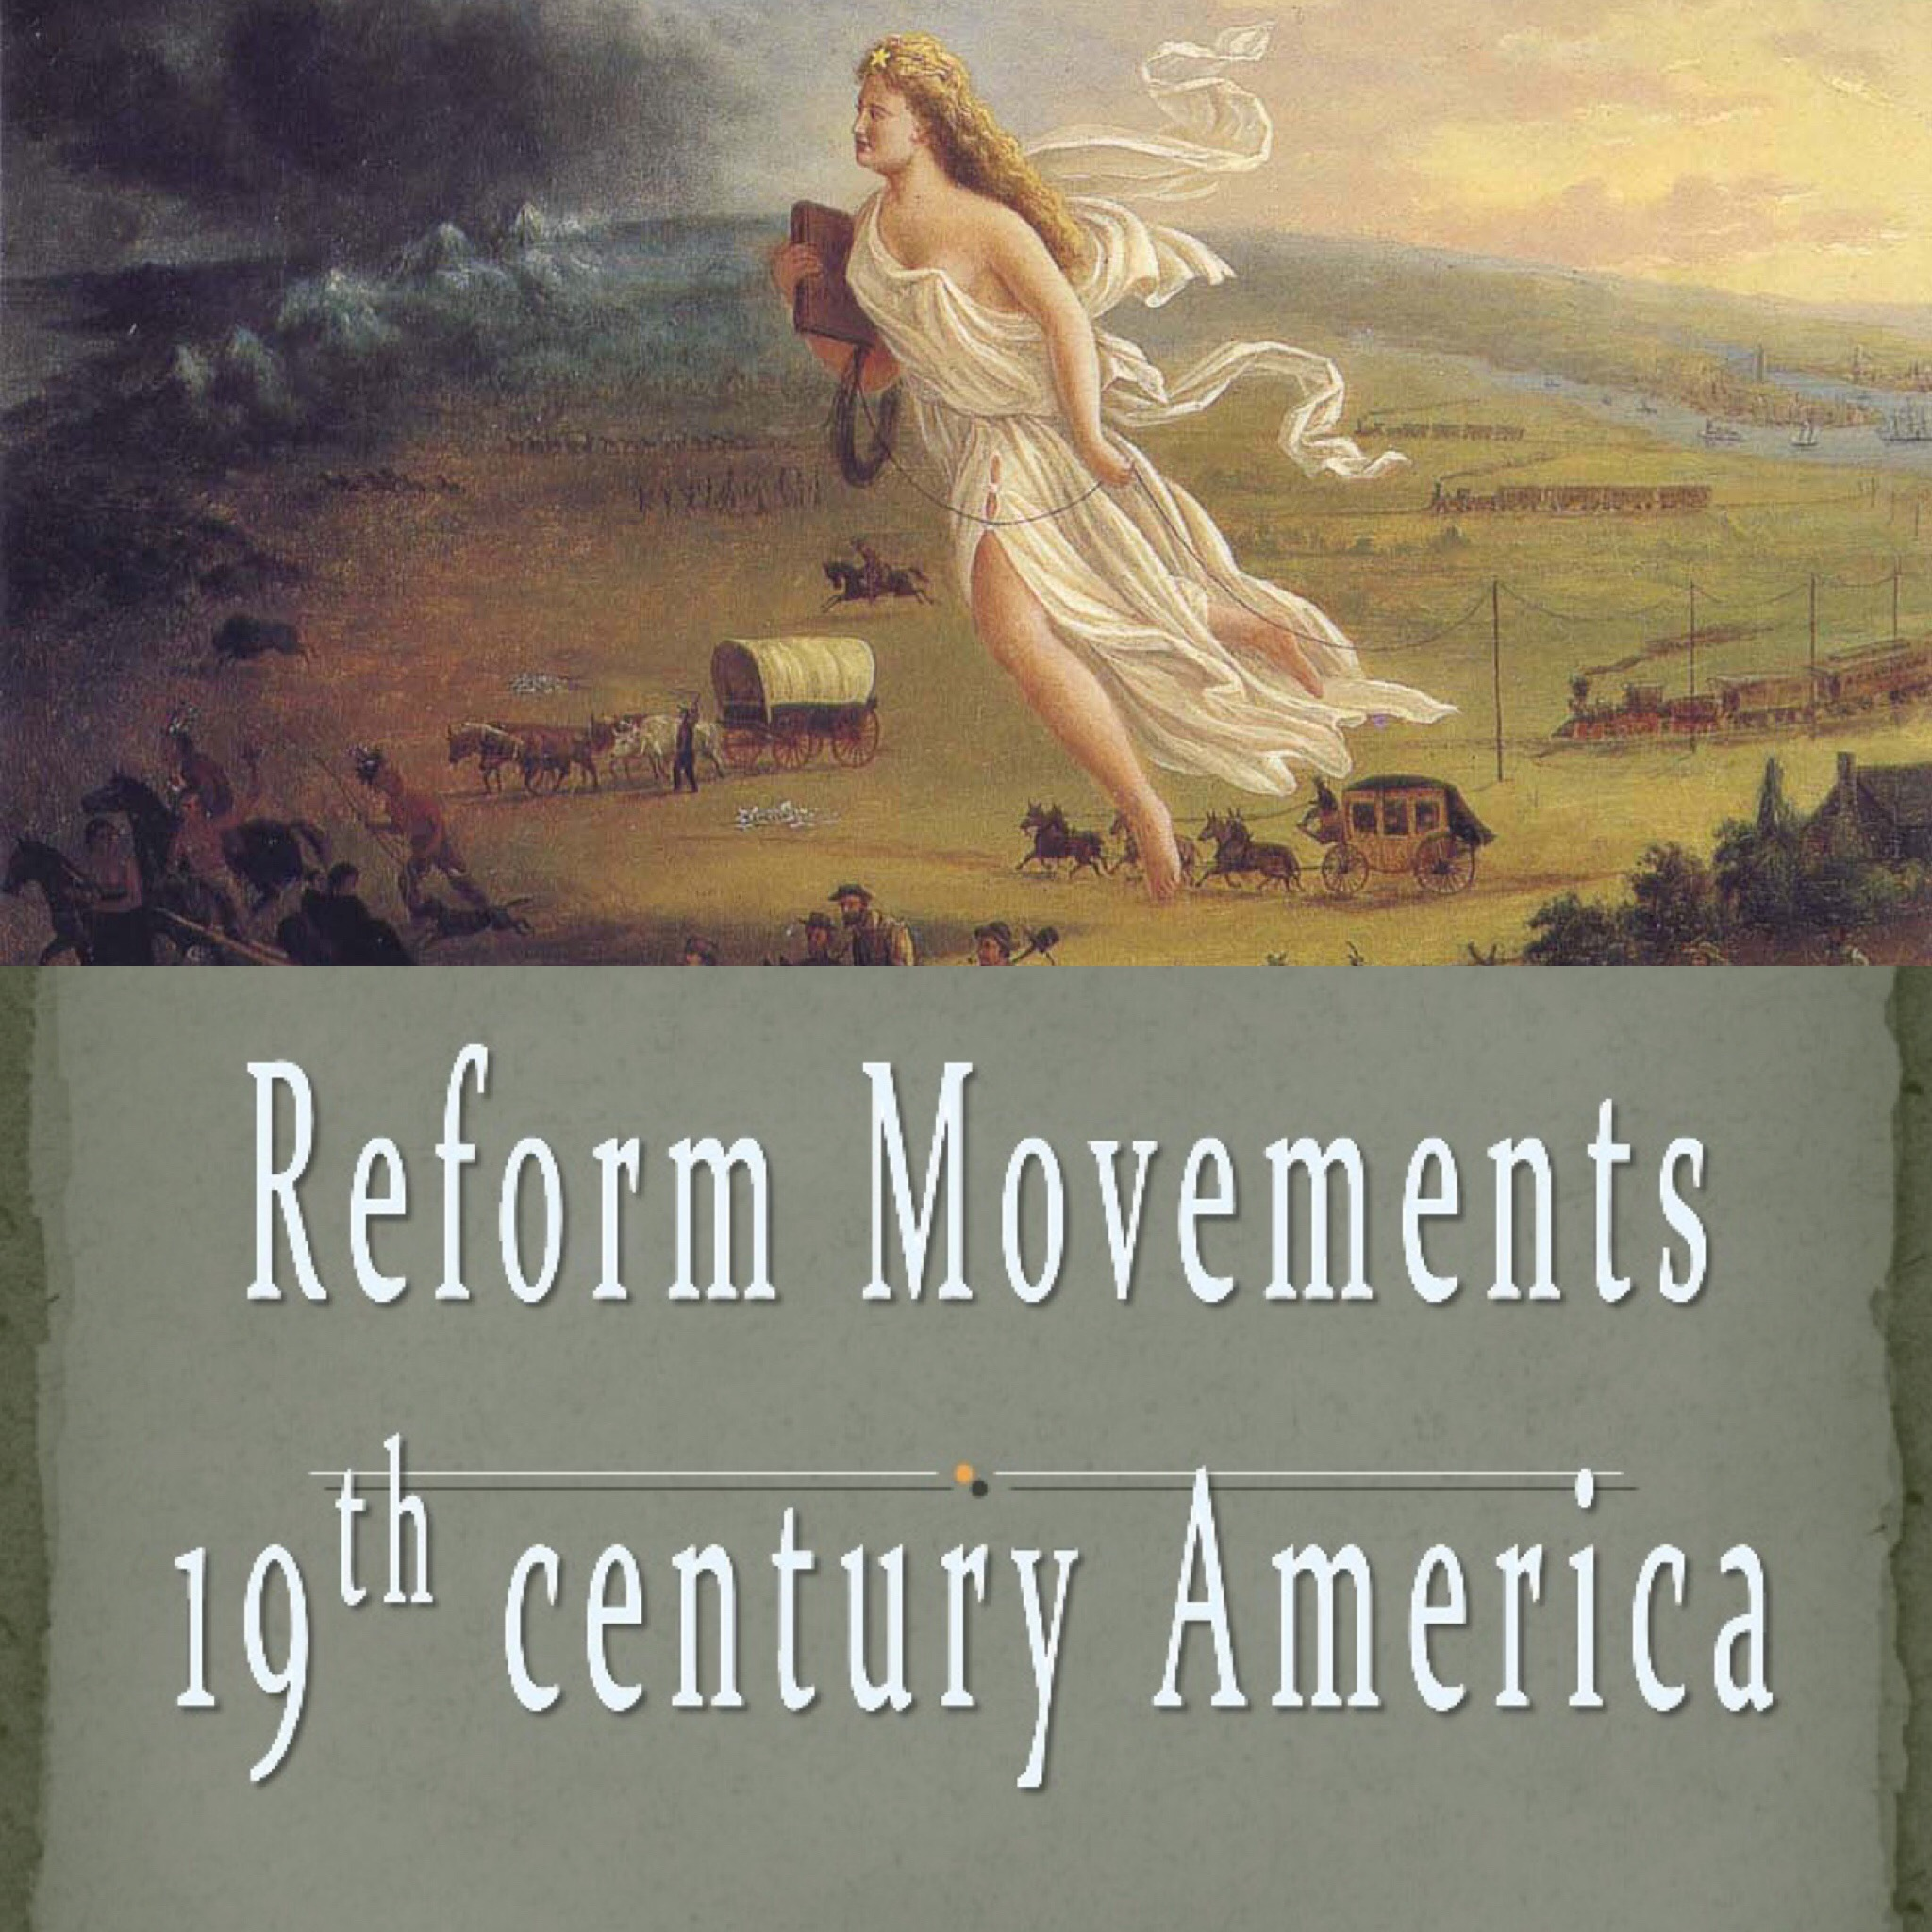 the powerful religious movement of reformation that brought division to slavery The protestant reformation made parliaments more general all over europe and the liberties of protestant england became in course of time the liberties of nearly all the states of europe there were some exceptions, however.